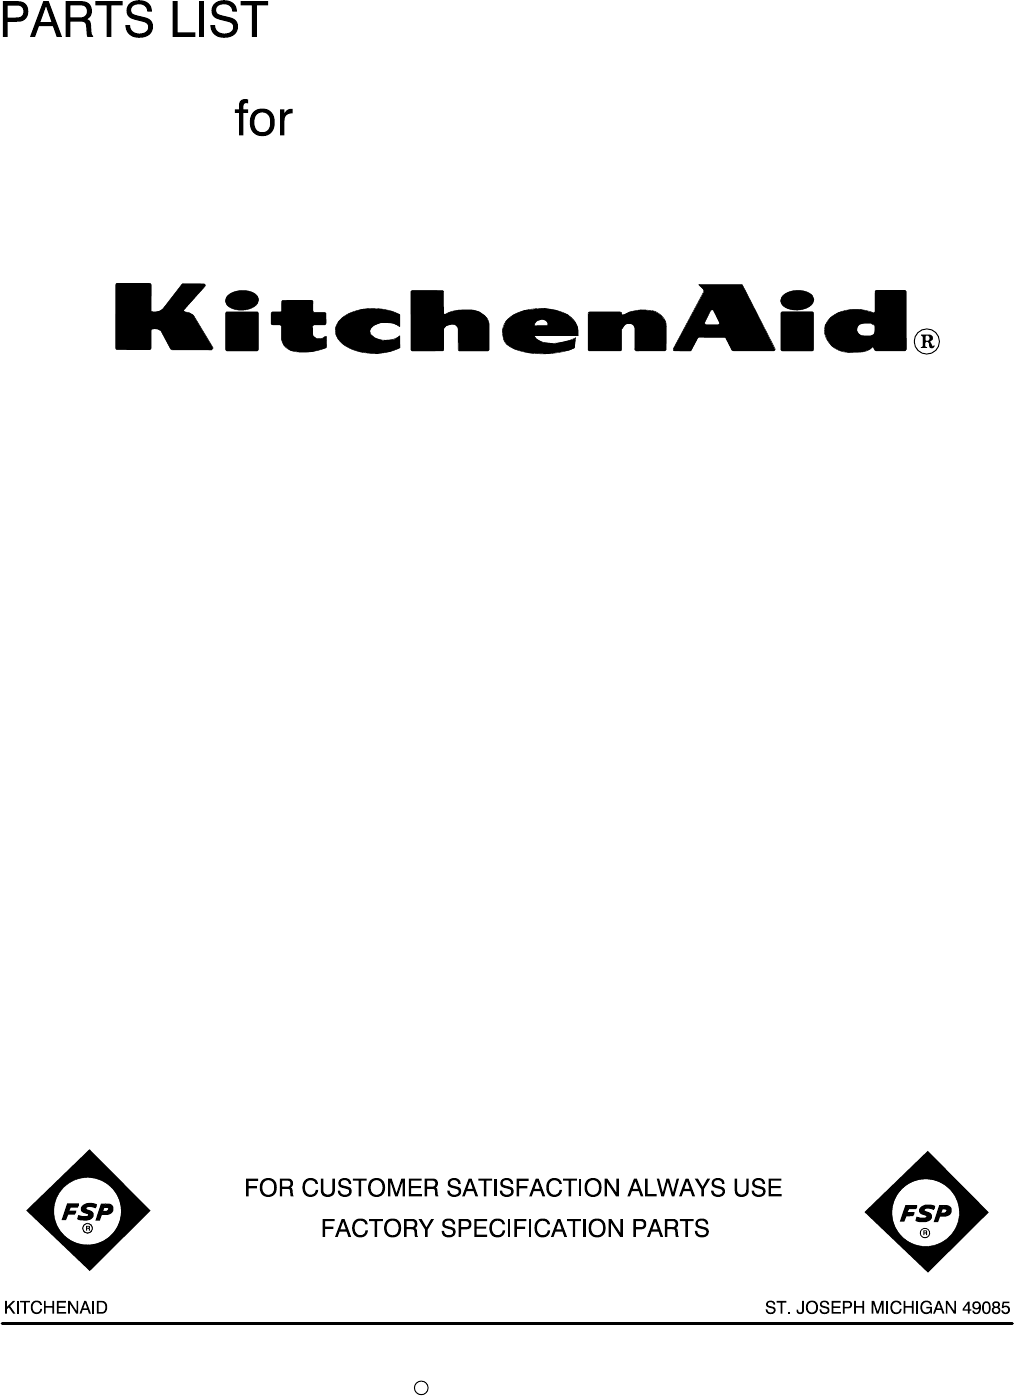 Kitchenaid Blender Kfp715ob2 User Guide Manualsonline Com